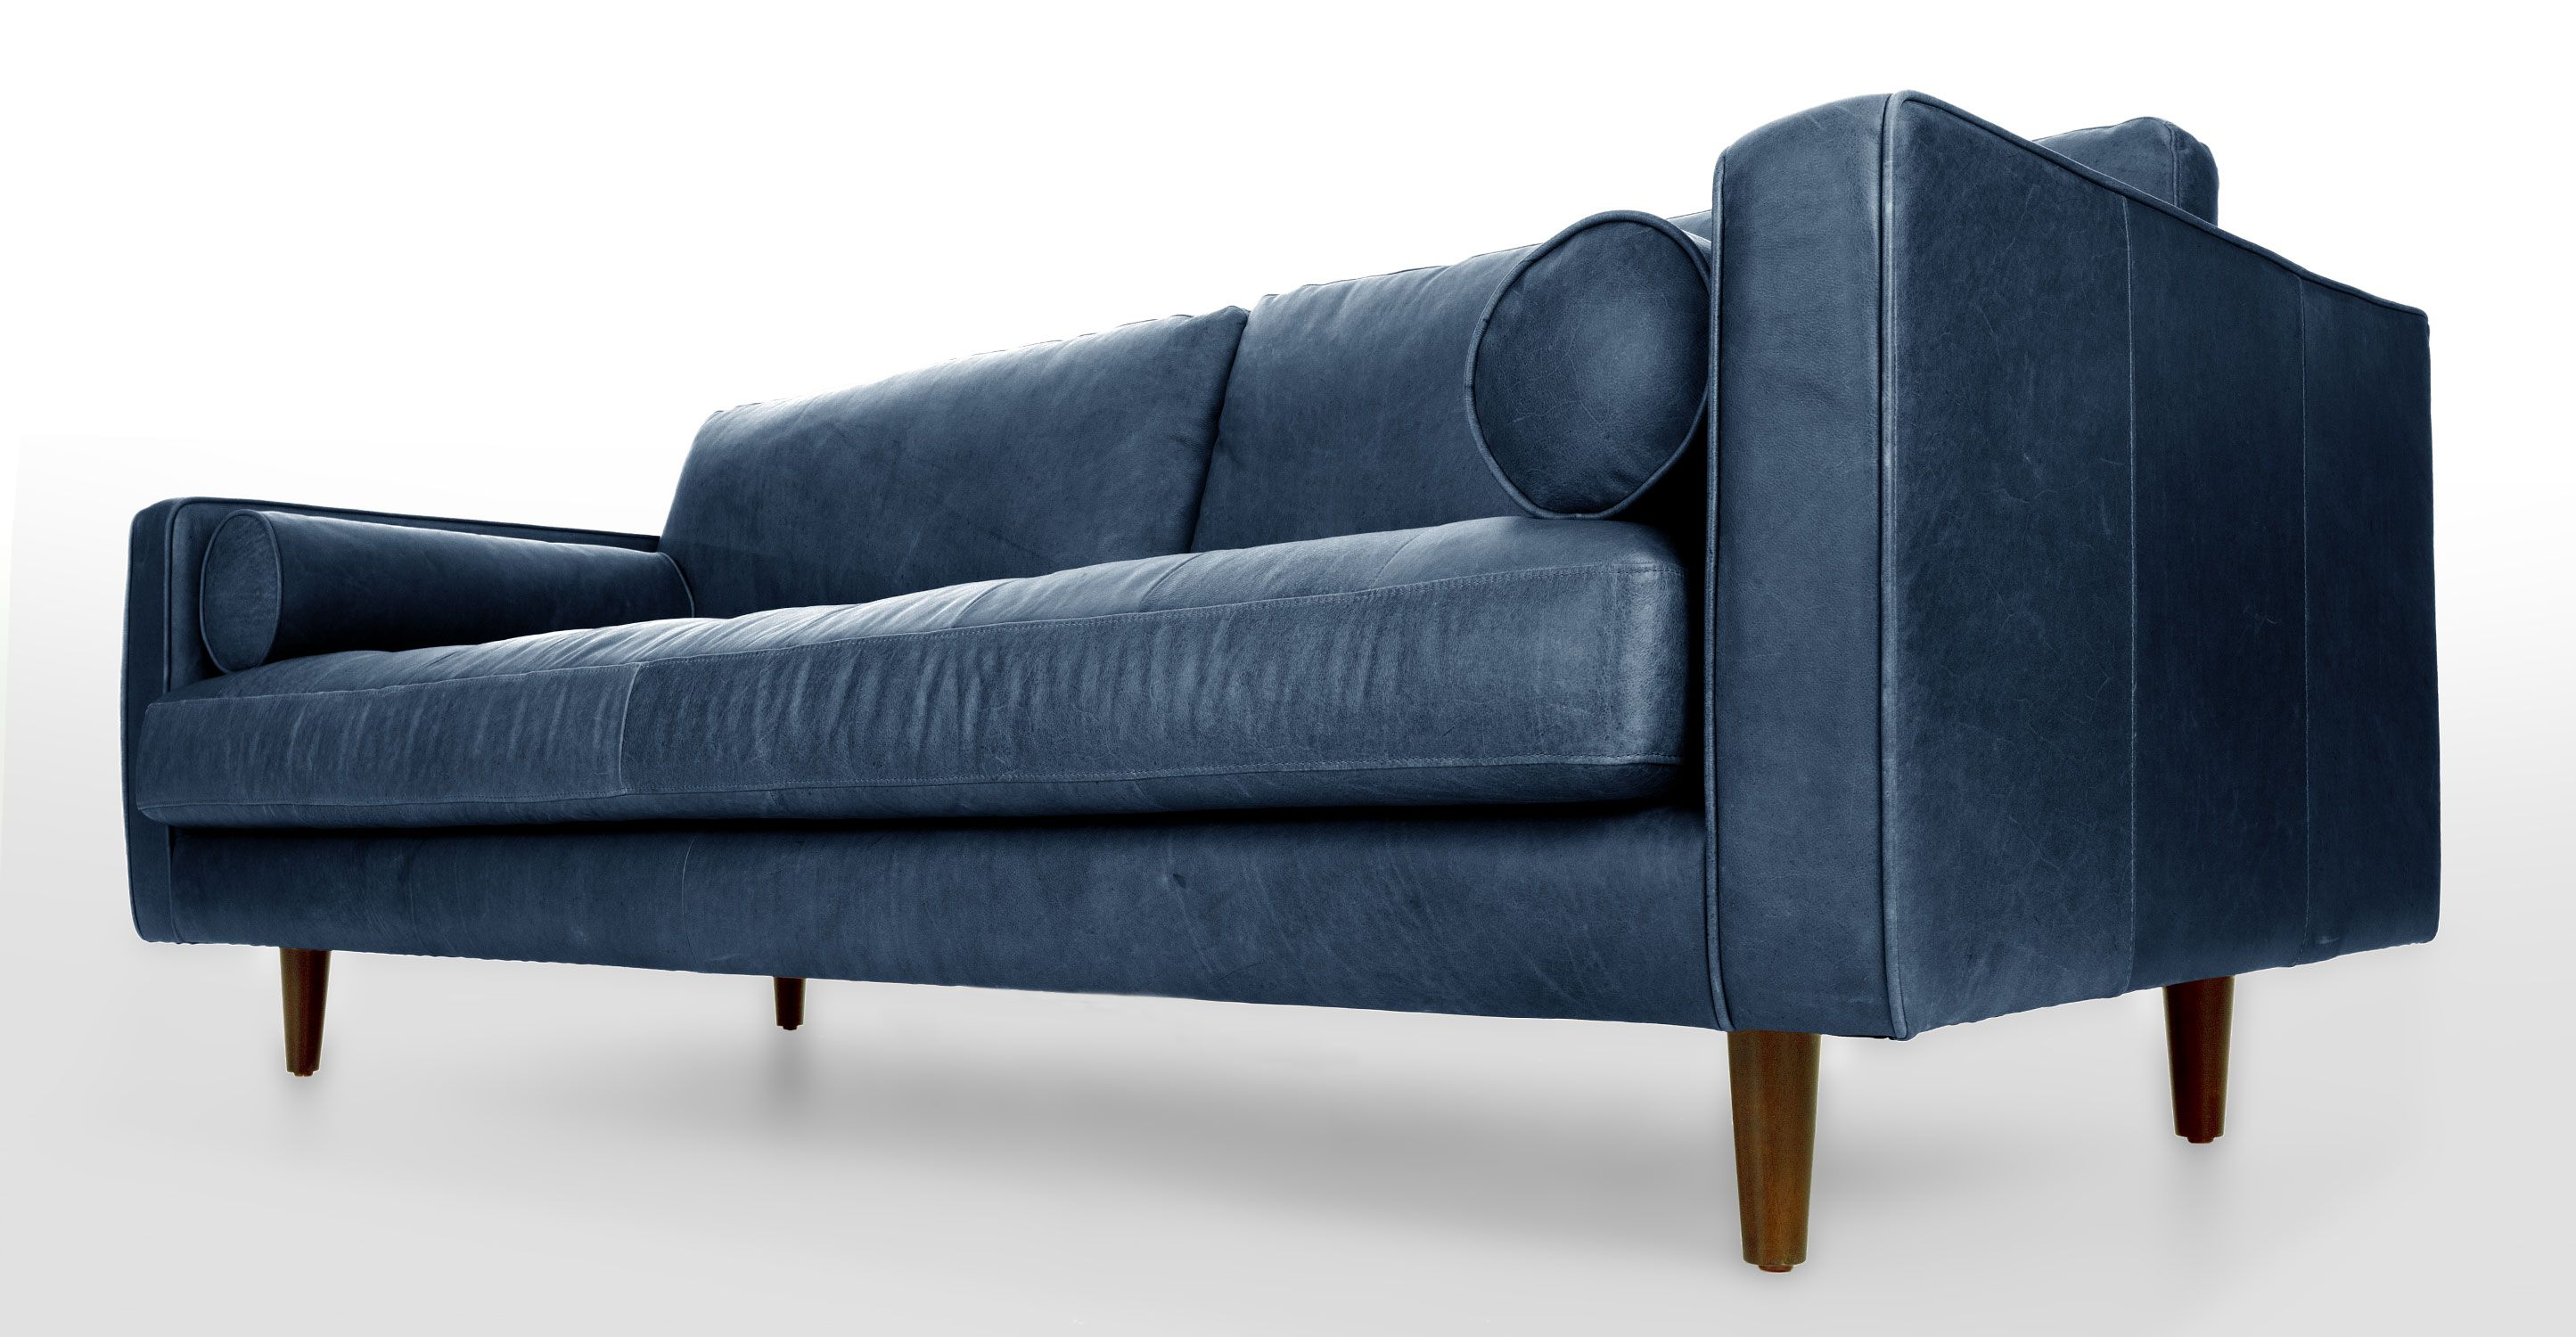 Sven Oxford Blue Sofa | Blue leather sofa, Blue leather ...